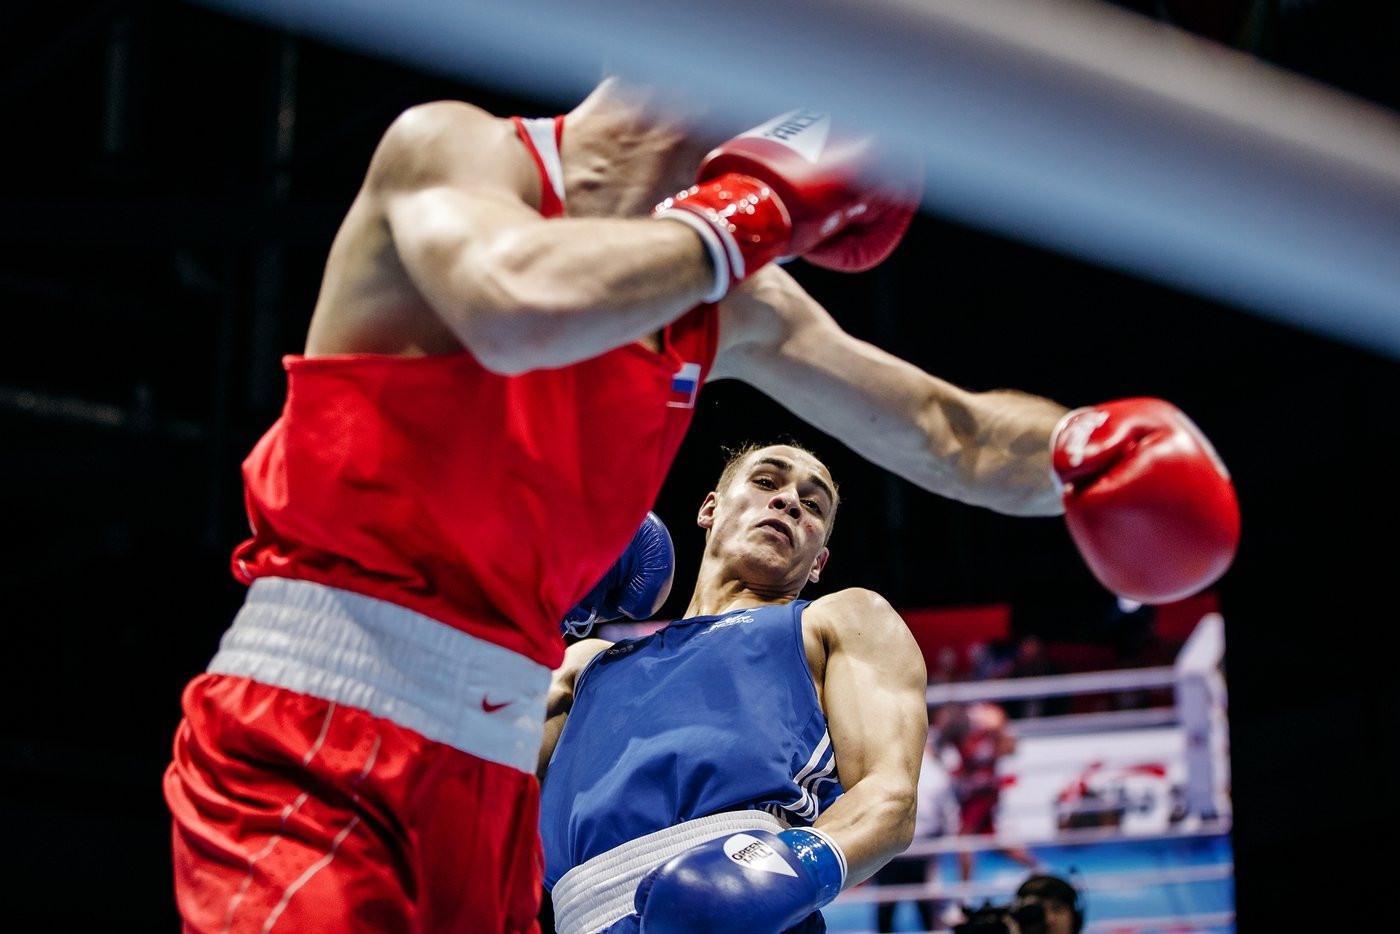 Gadzhimagomedov was taking on David Kieran Nyika of New Zealand ©Yekaterinburg 2019